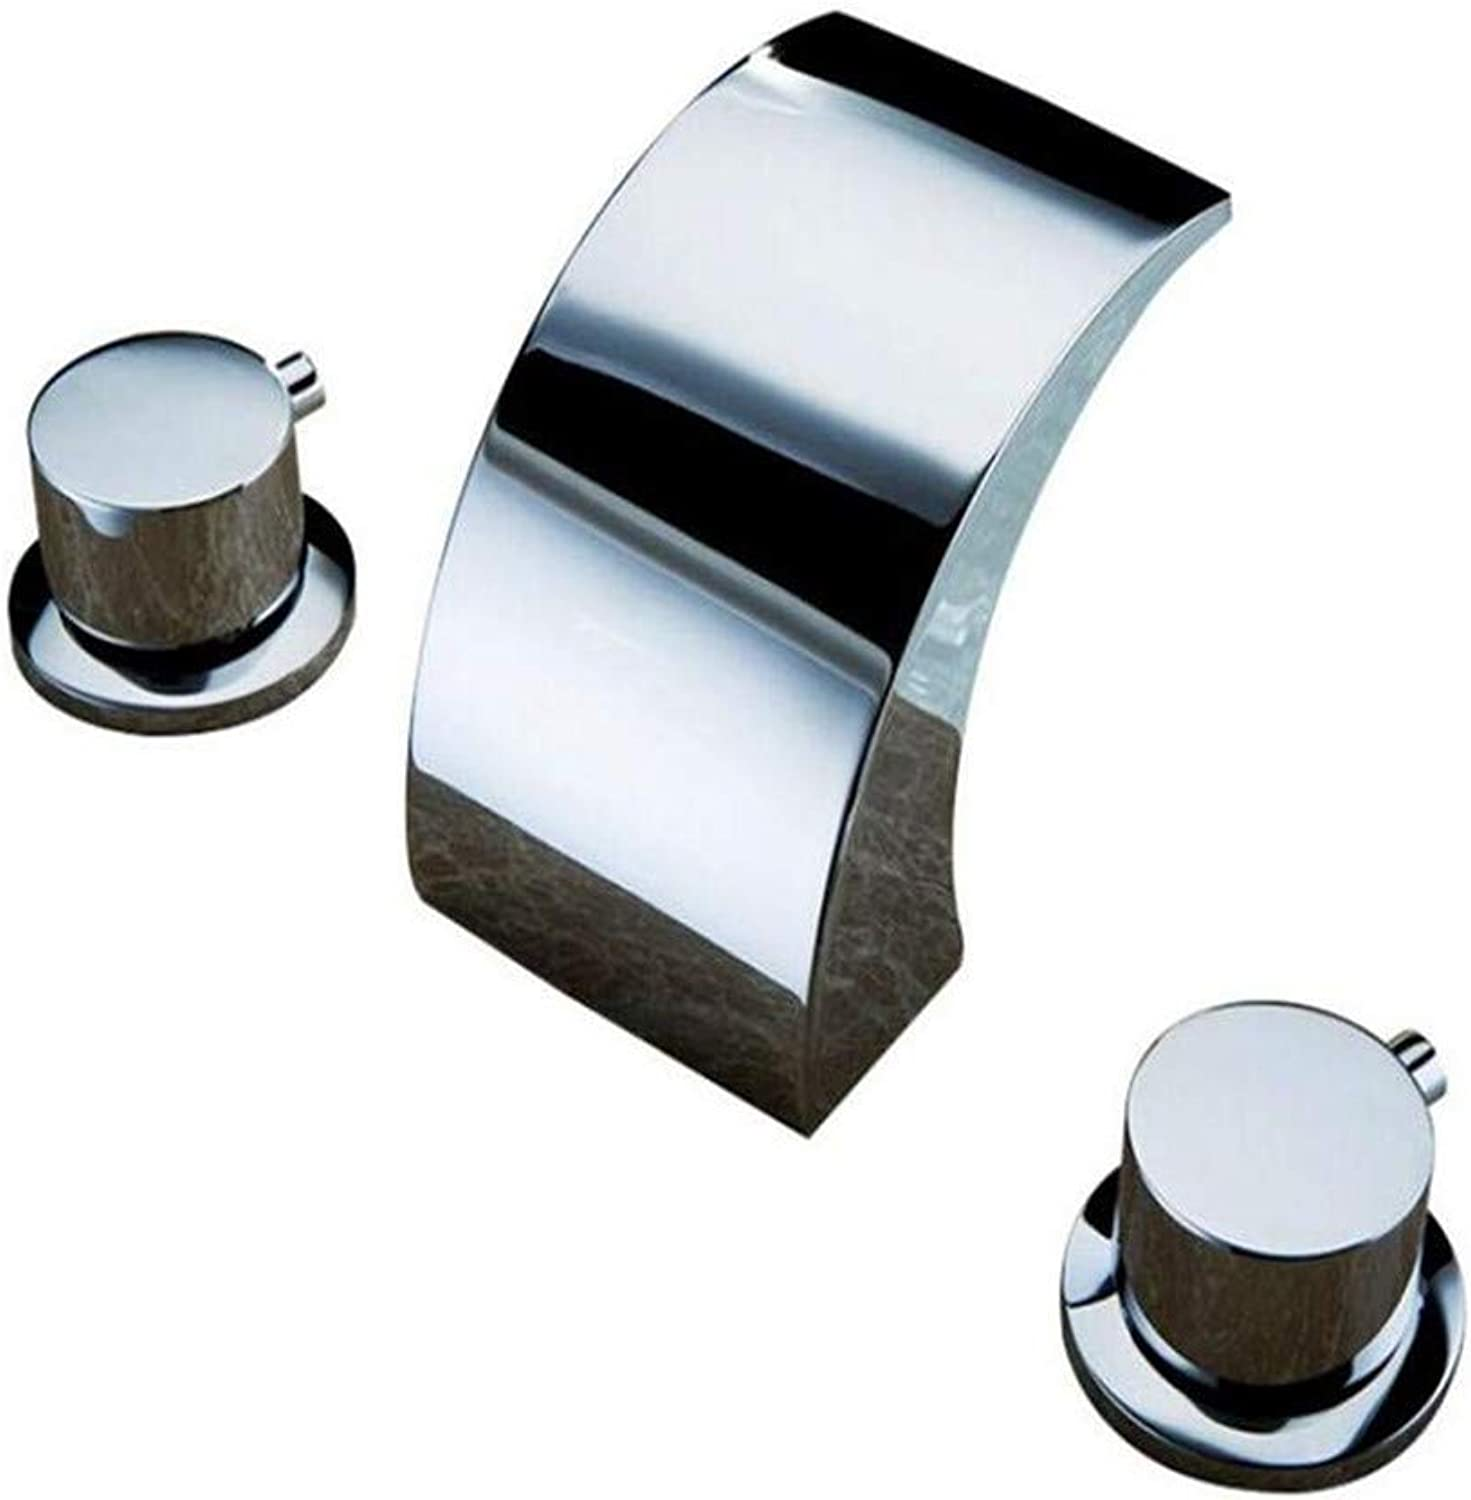 Modern Brass Chrome Hot and Cold Water Bathroom Taps Three Hole Basin Waterfall Round Handle High Quality Water Tap